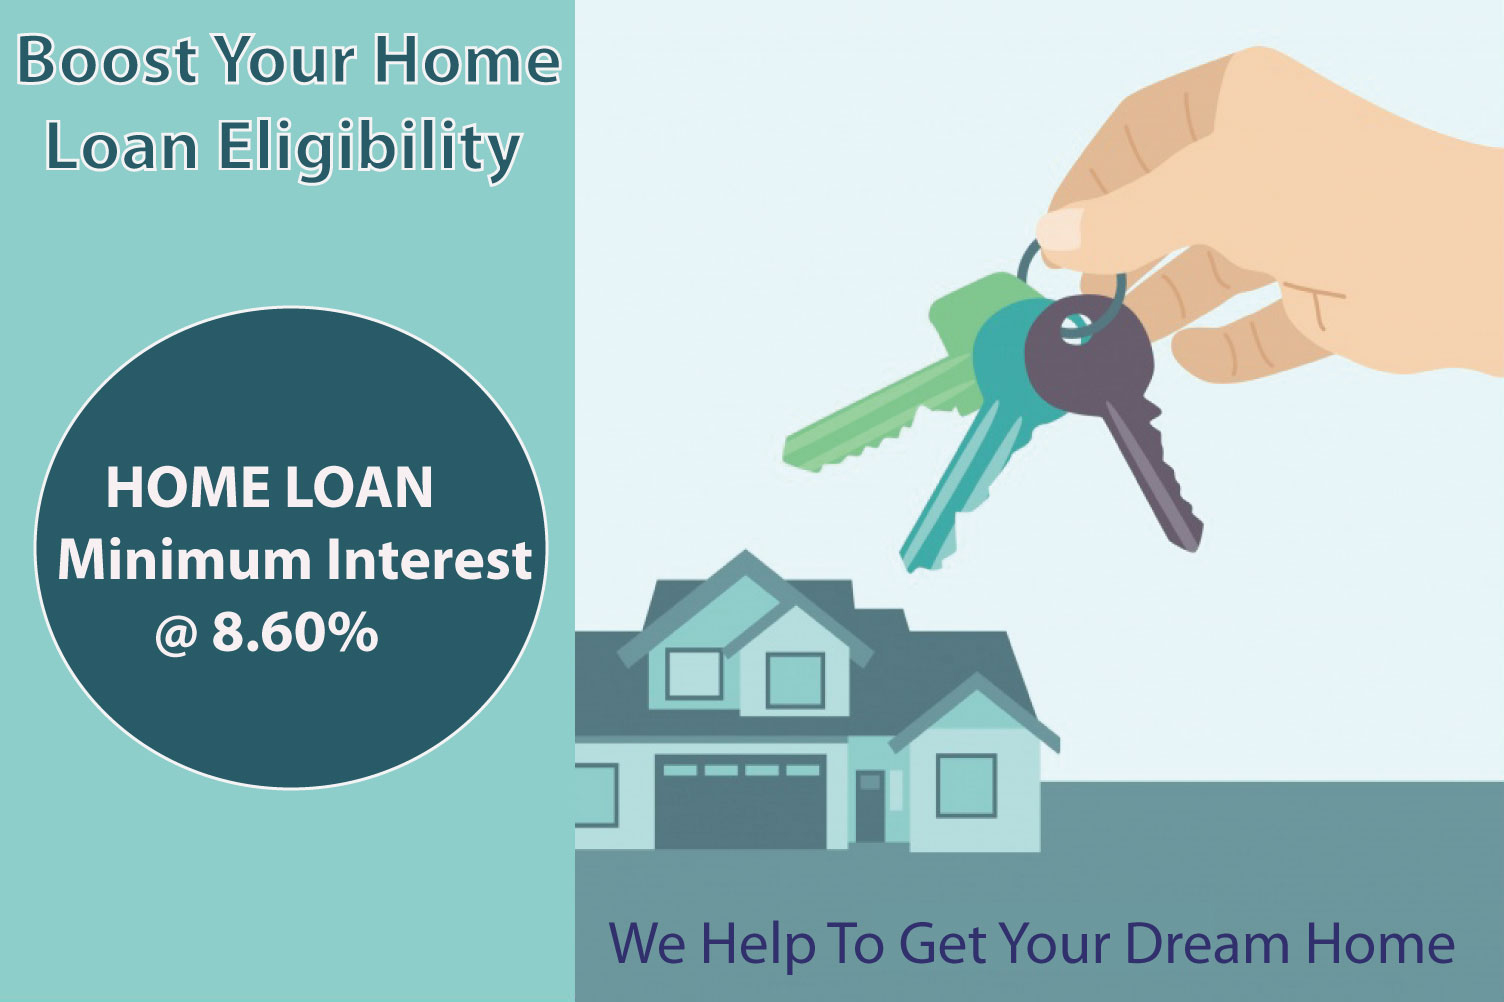 5 Ways to Boost Your Home Loan Eligibility